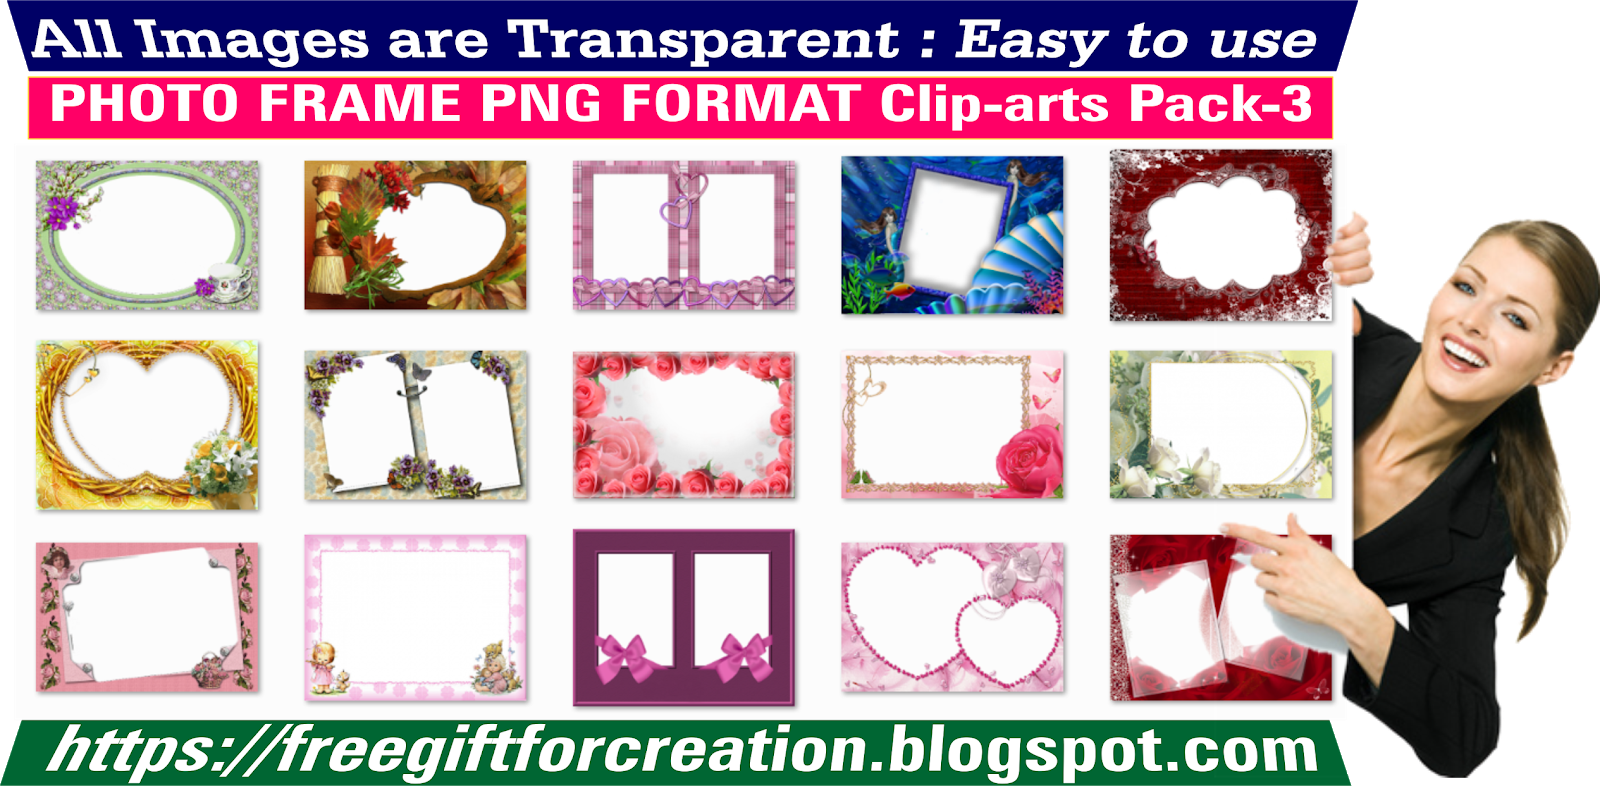 4b5732c033e4 Free Download Photo Frame PNG Format Clip-arts Pack-3